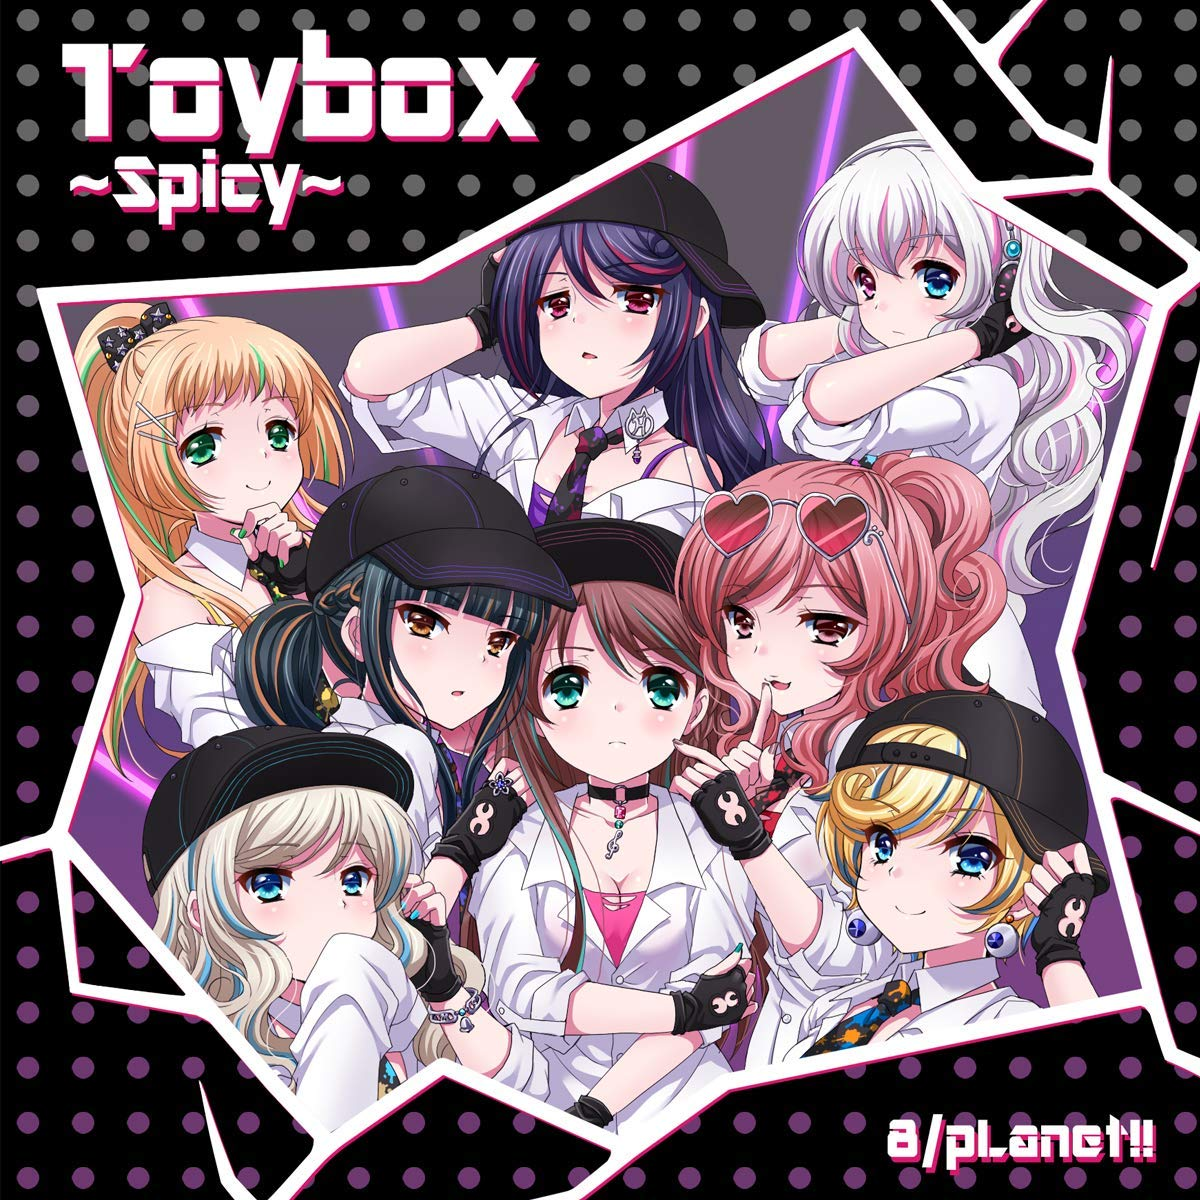 8:planet「Toybox~Spicy~(Single)」